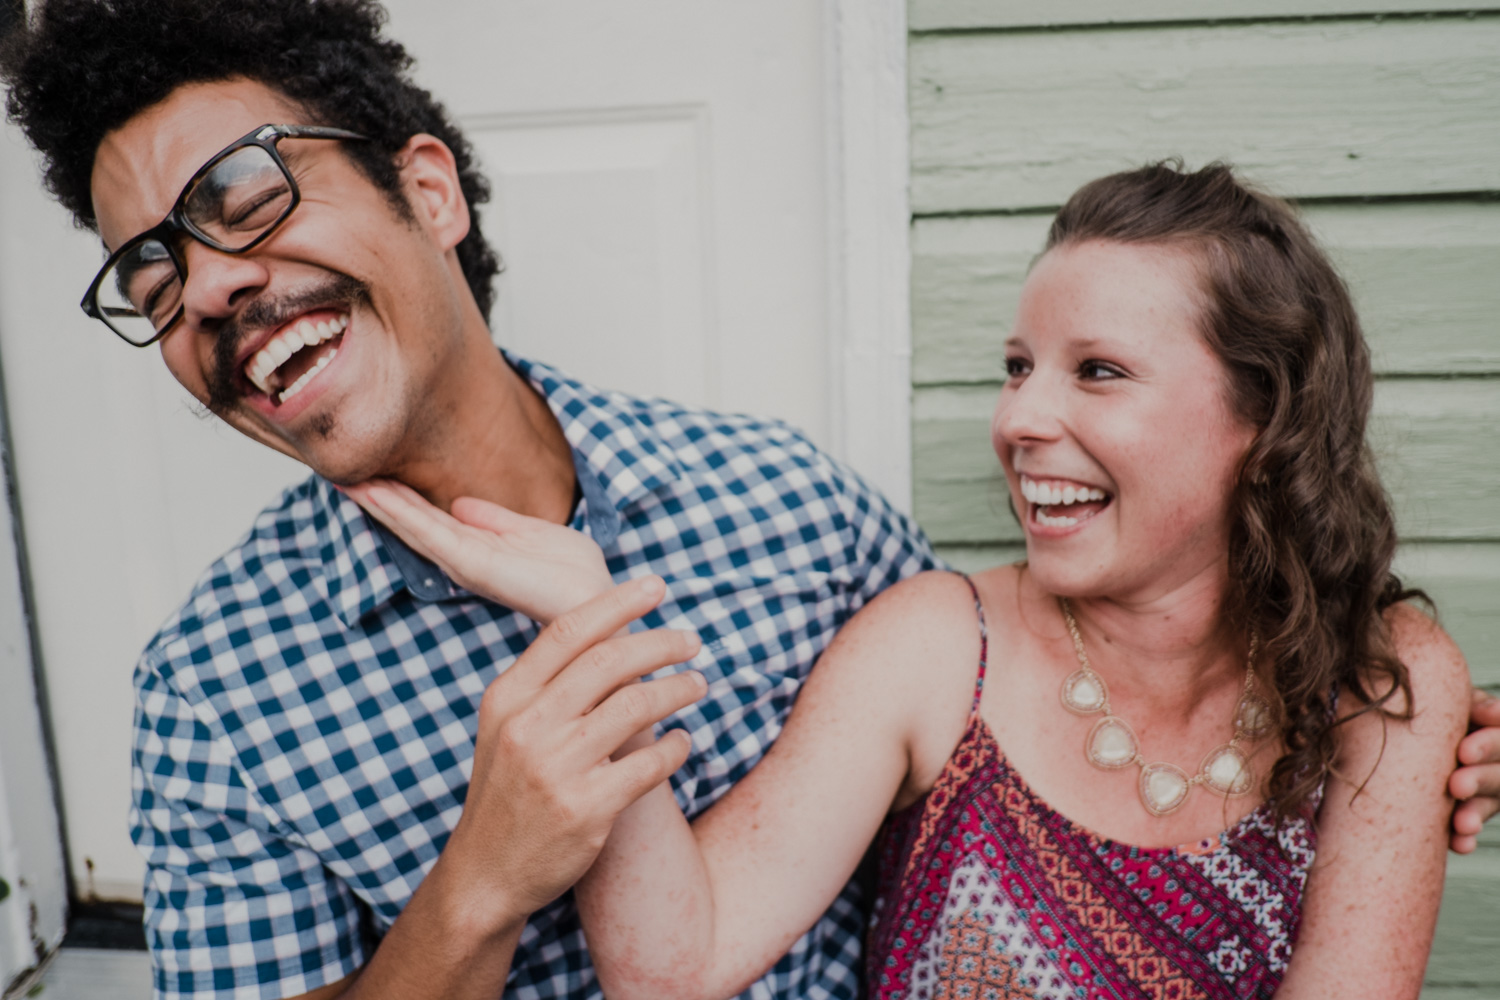 Leesburg engagement photos of happy laughing couple